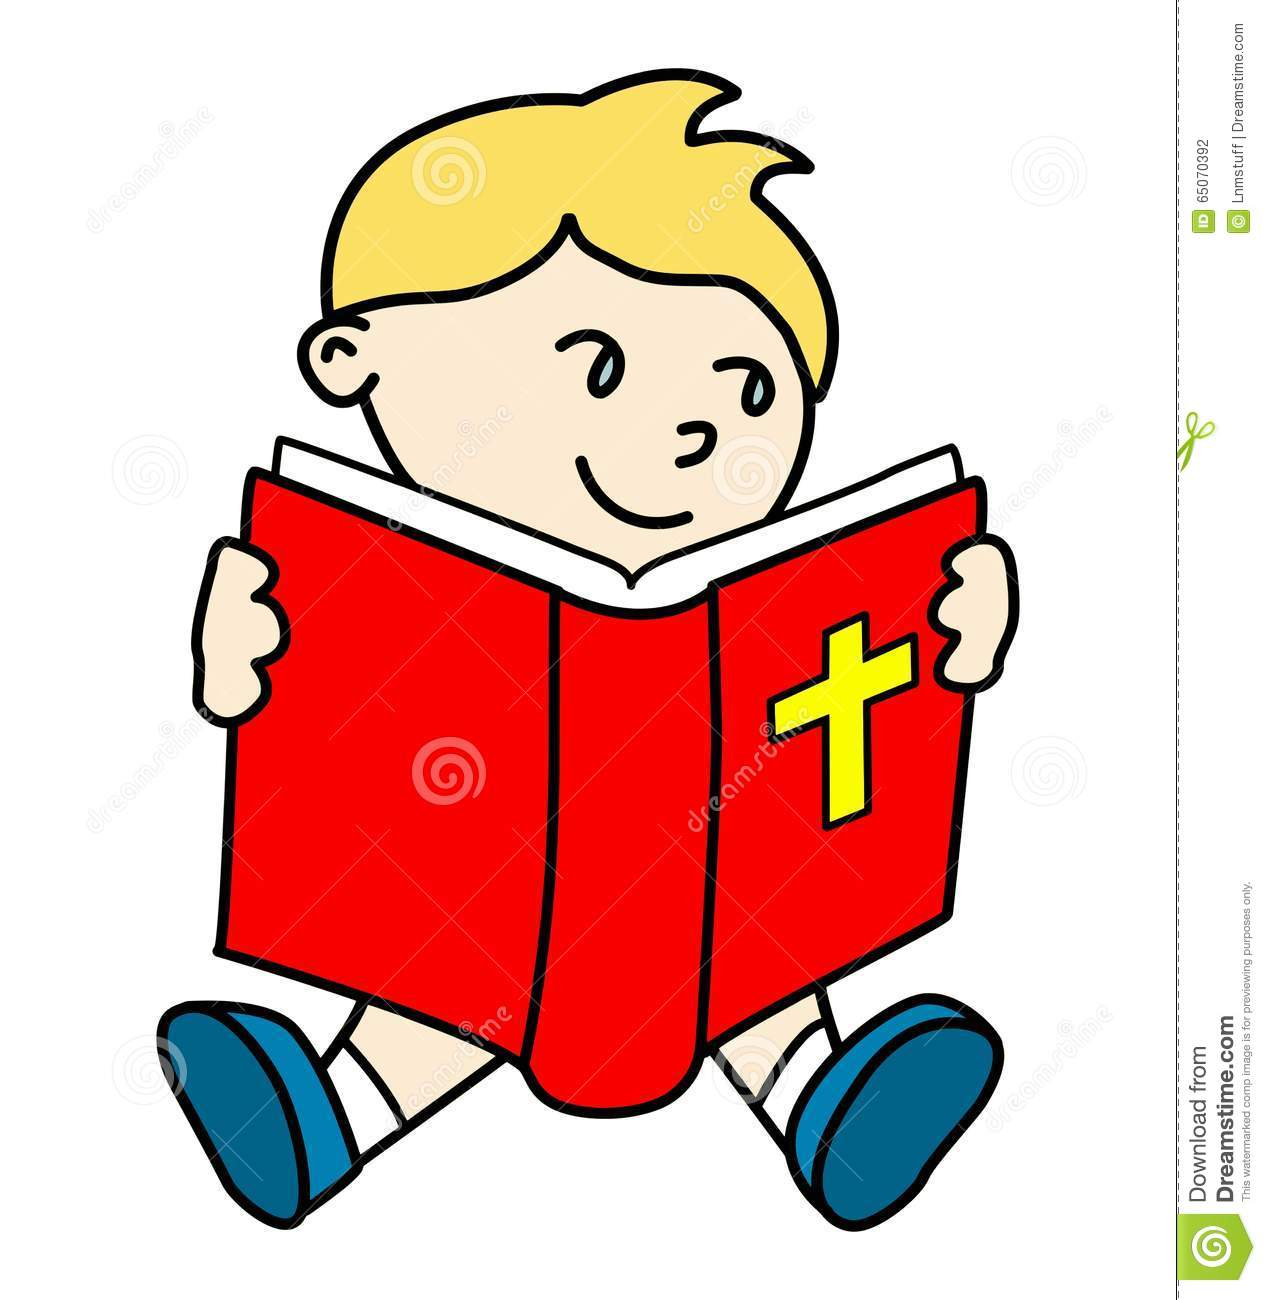 Kid royalty free stock. Bible clipart for kids